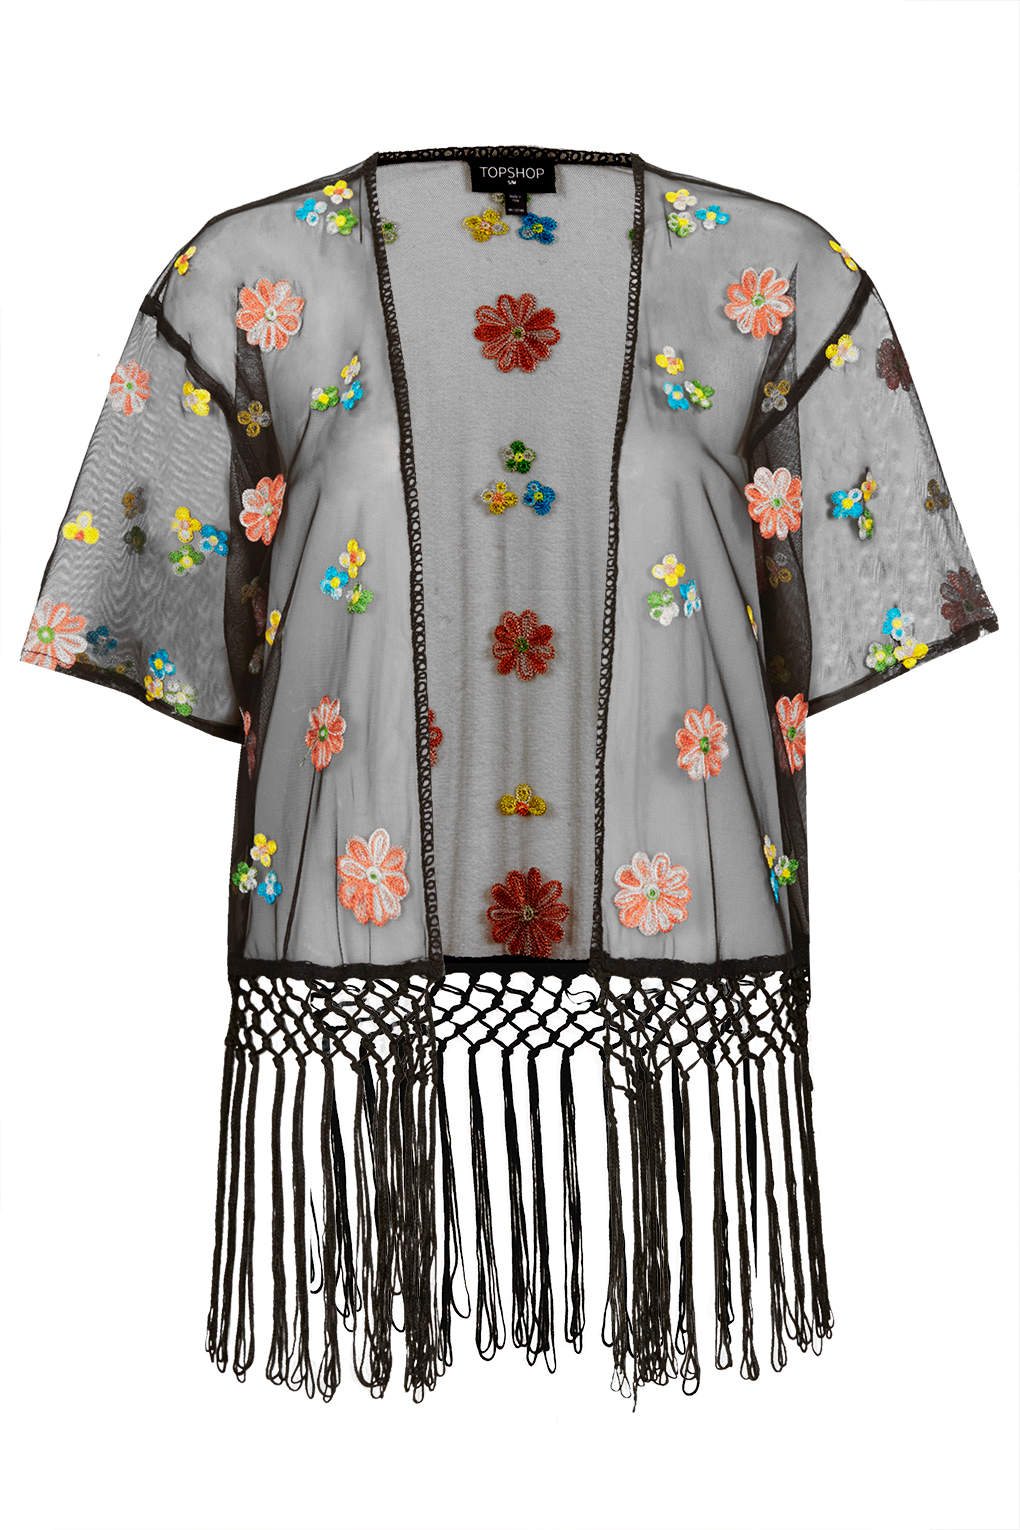 New topshop embroidered floral kimono fringe top blouse sz